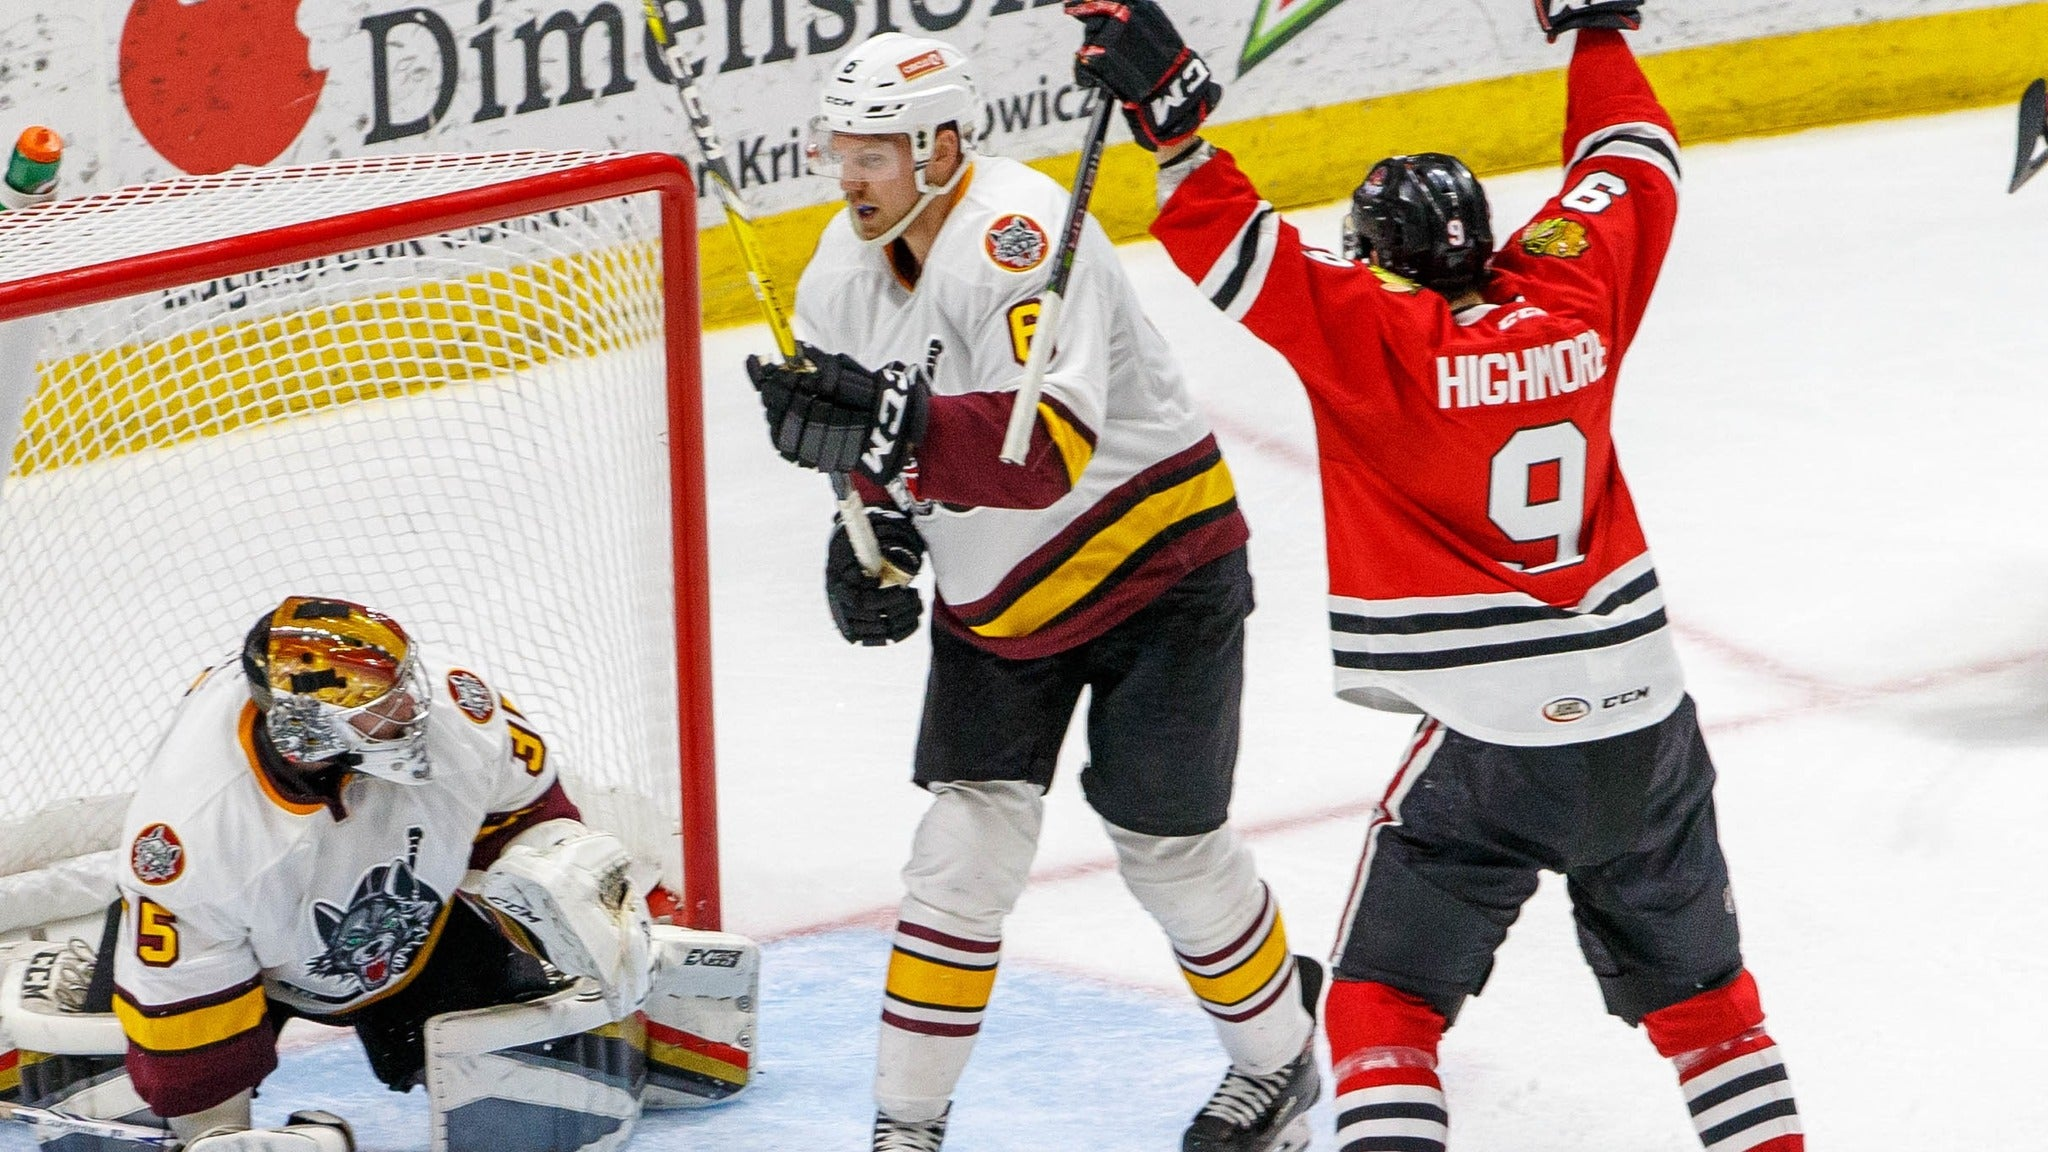 Rockford IceHogs vs Chicago Wolves at BMO Harris Bank Center